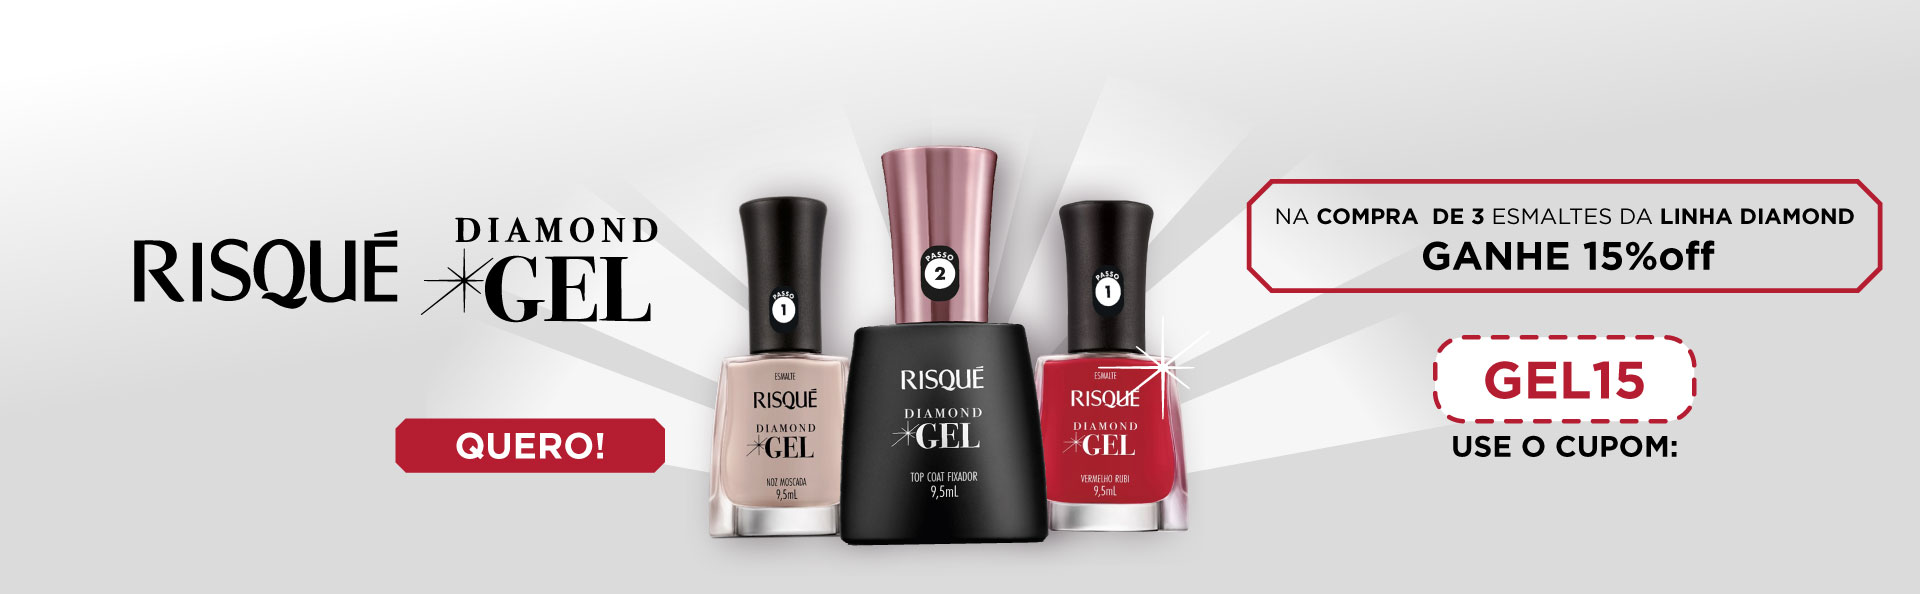 Risque Diamond Gel